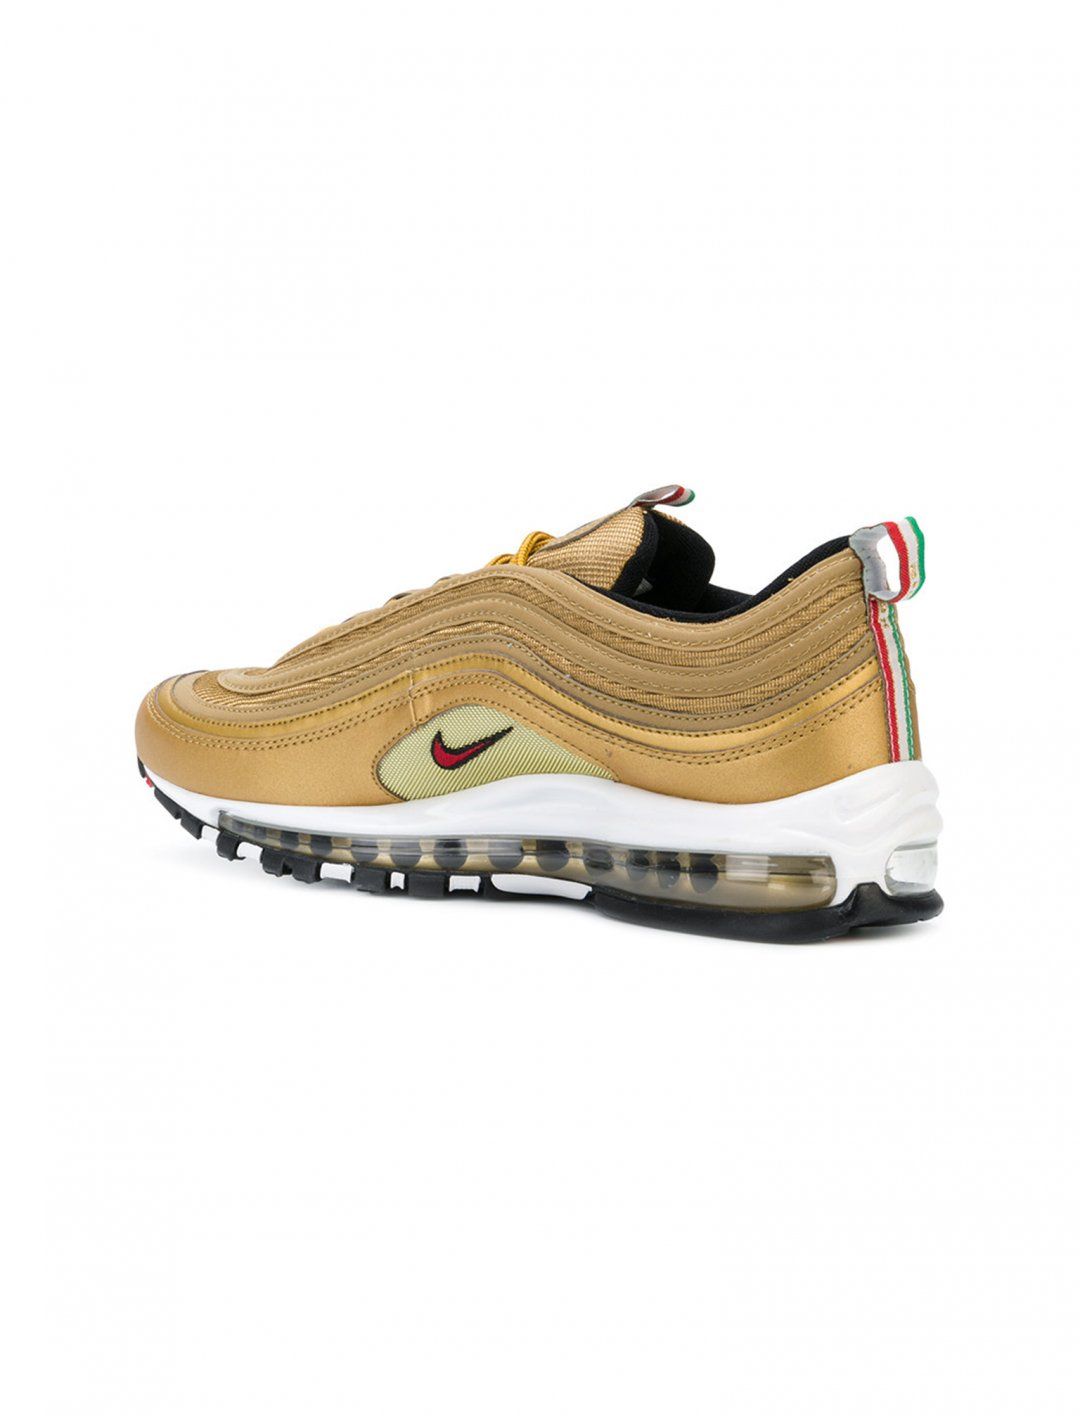 "Nike Air Max 97 Sneakers {""id"":12,""product_section_id"":1,""name"":""Shoes"",""order"":12} Nike"